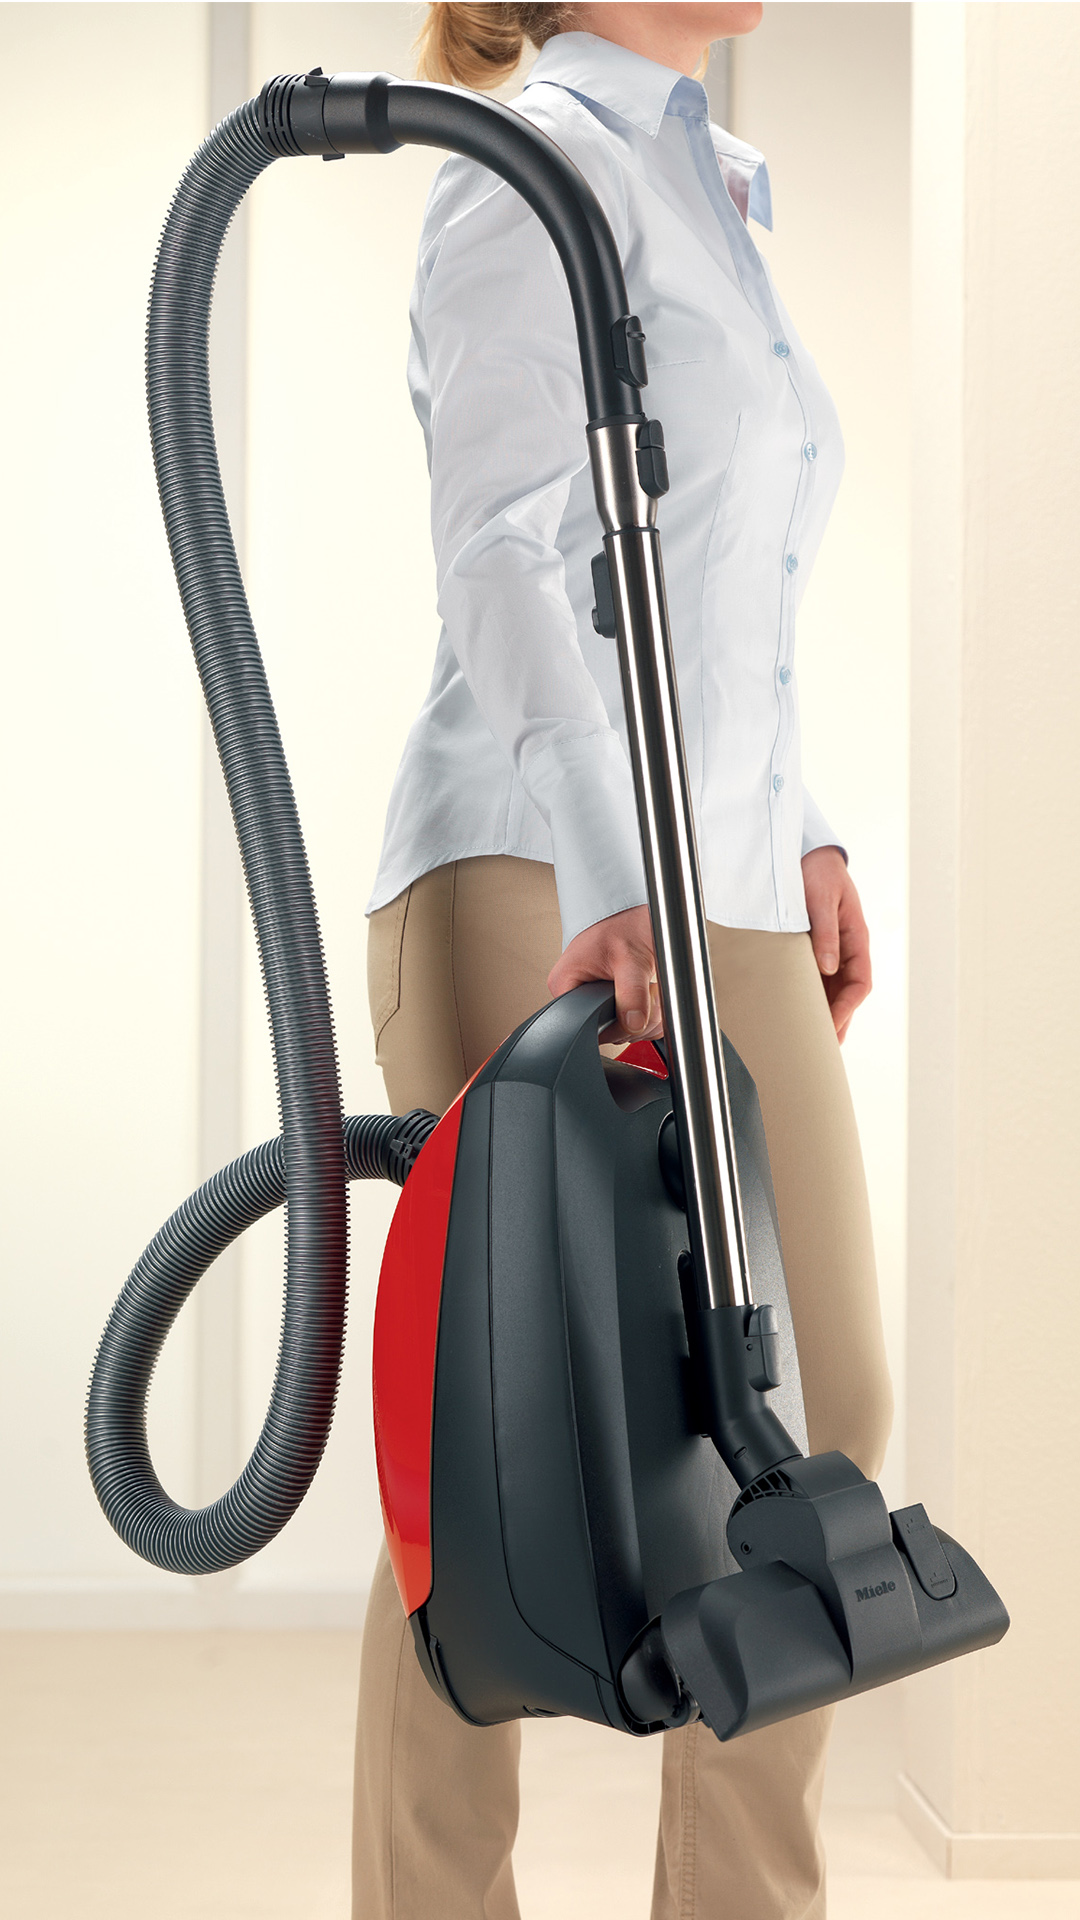 Miele Compact Vacuum Cleaners